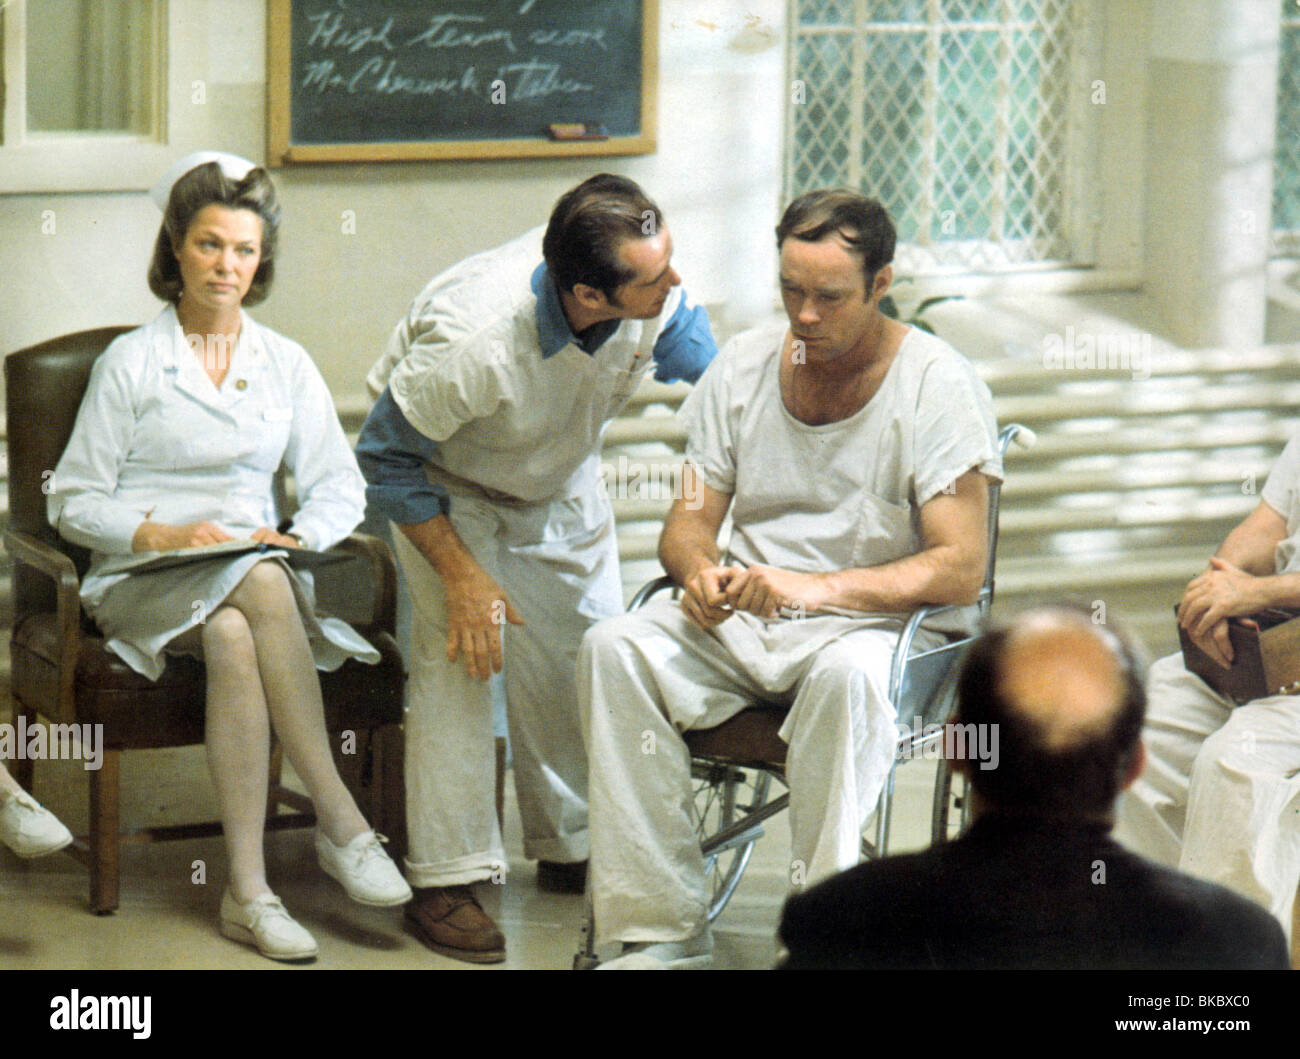 ONE FLEW OVER THE CUCKOO'S NEST(1975) LOUISE FLETCHER,JACK NICHOLSON OFC 003FOH - Stock Image